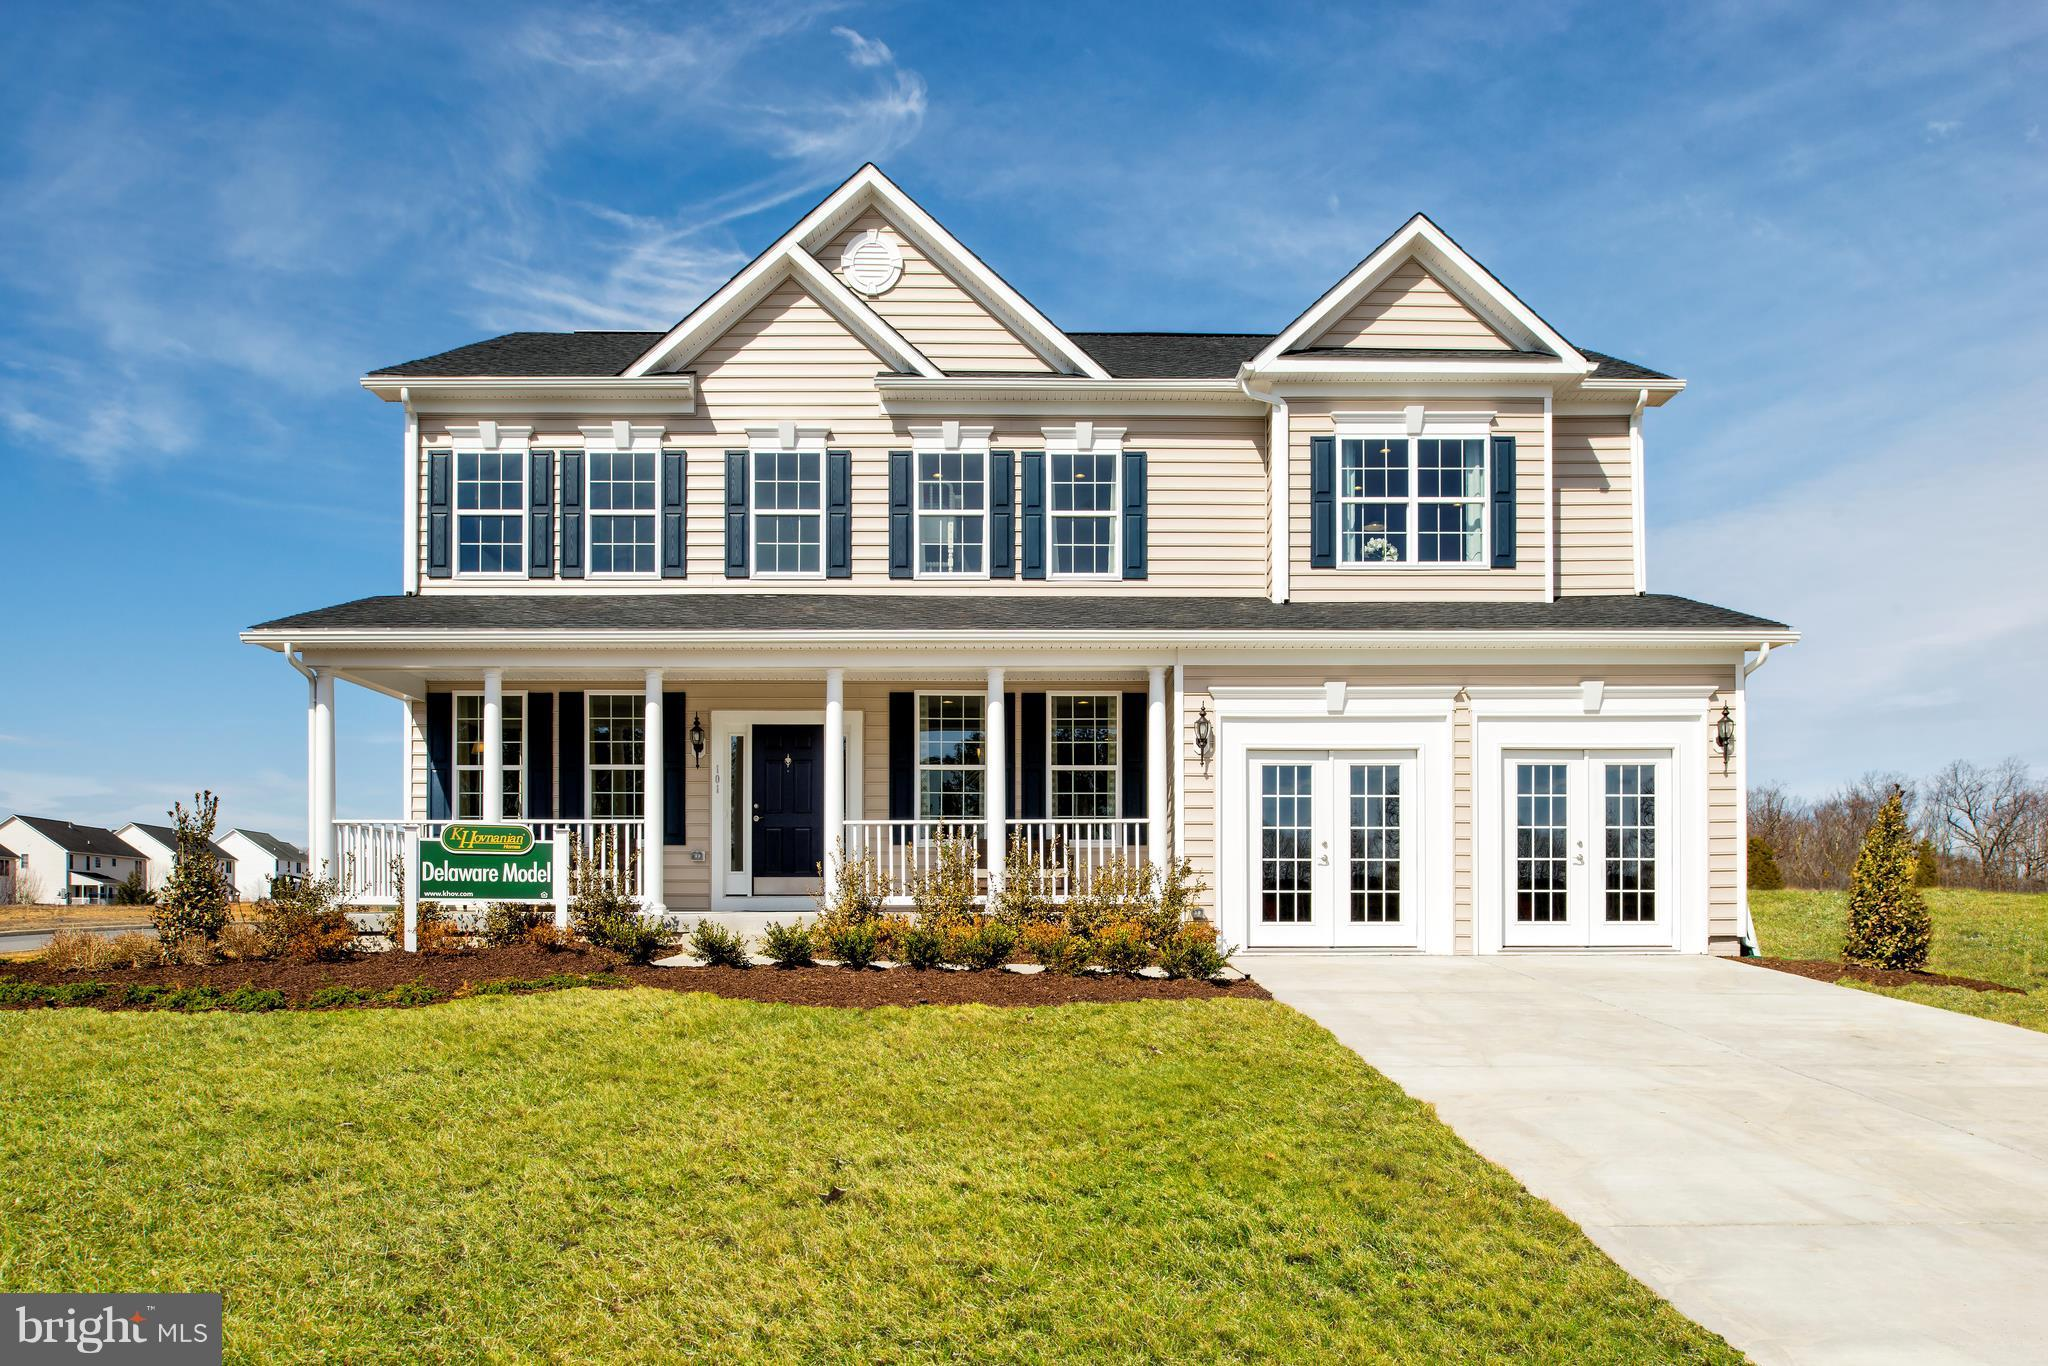 Spacious floorplan with soaring two-story family room; optional spa shower and gourmet kitchen. Photos similar; may show options.